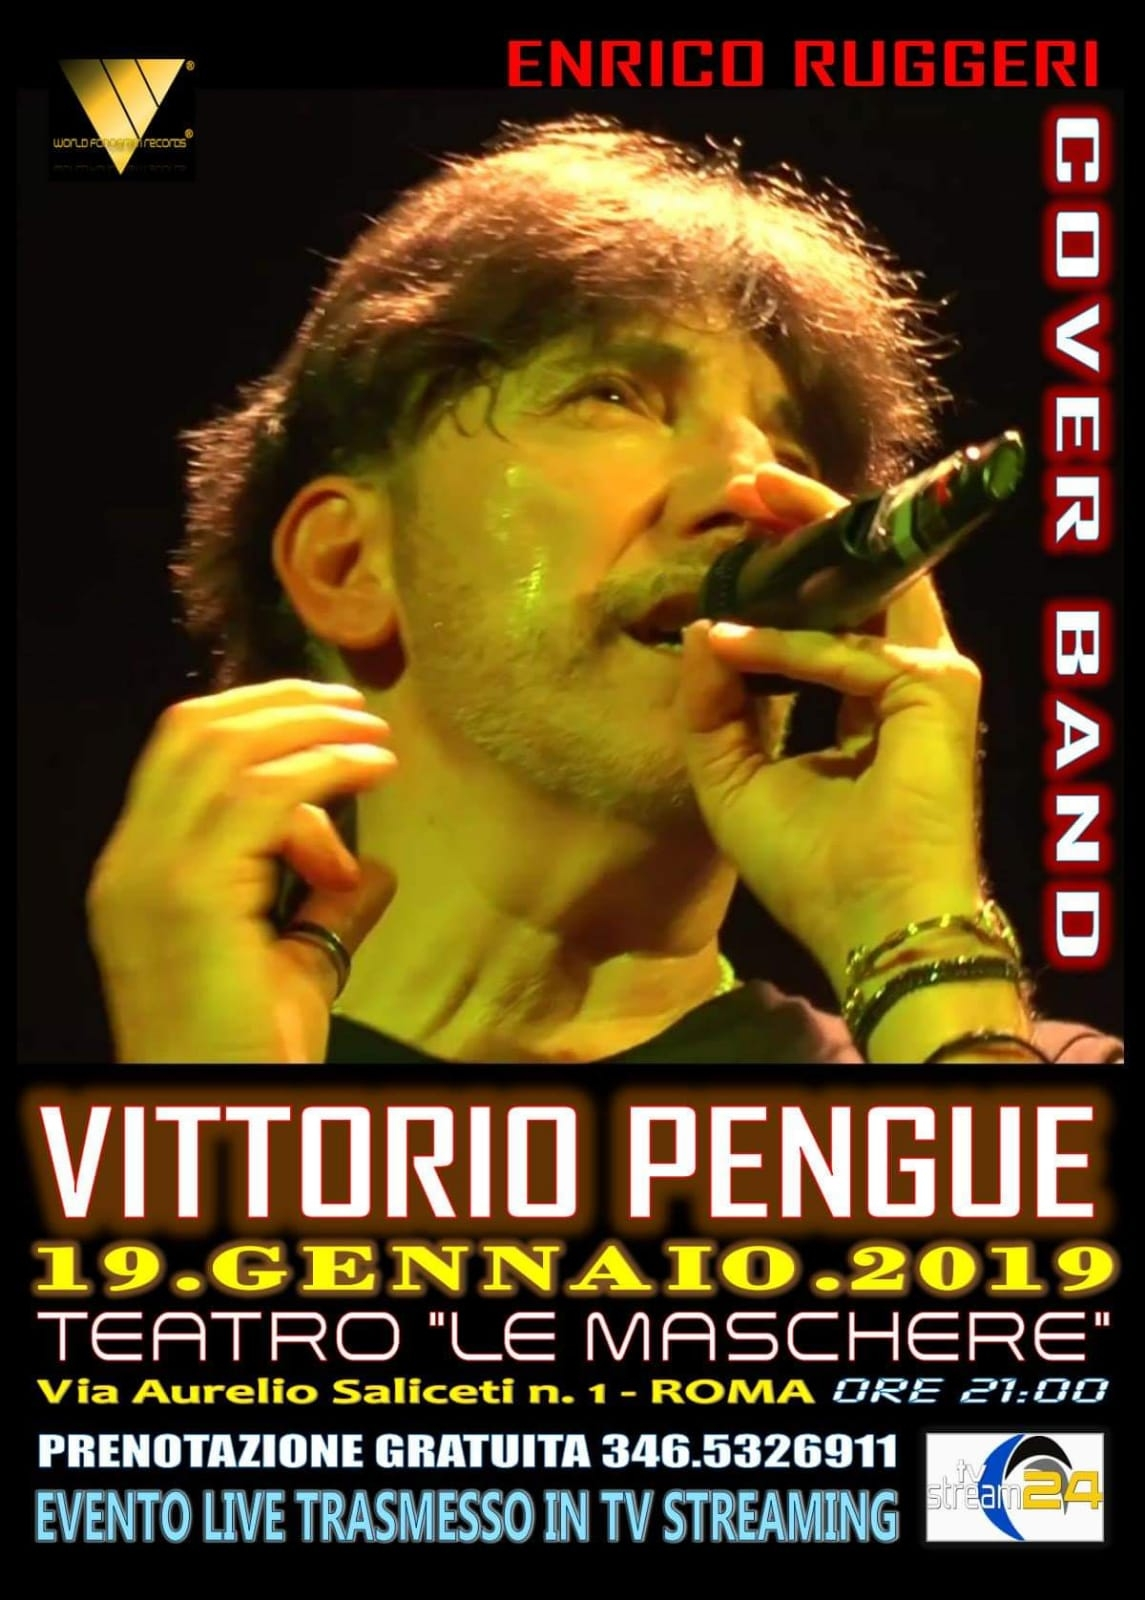 Diretta Streaming Vittorio Pengue Cover Band Enrico Ruggeri 19 01 2019